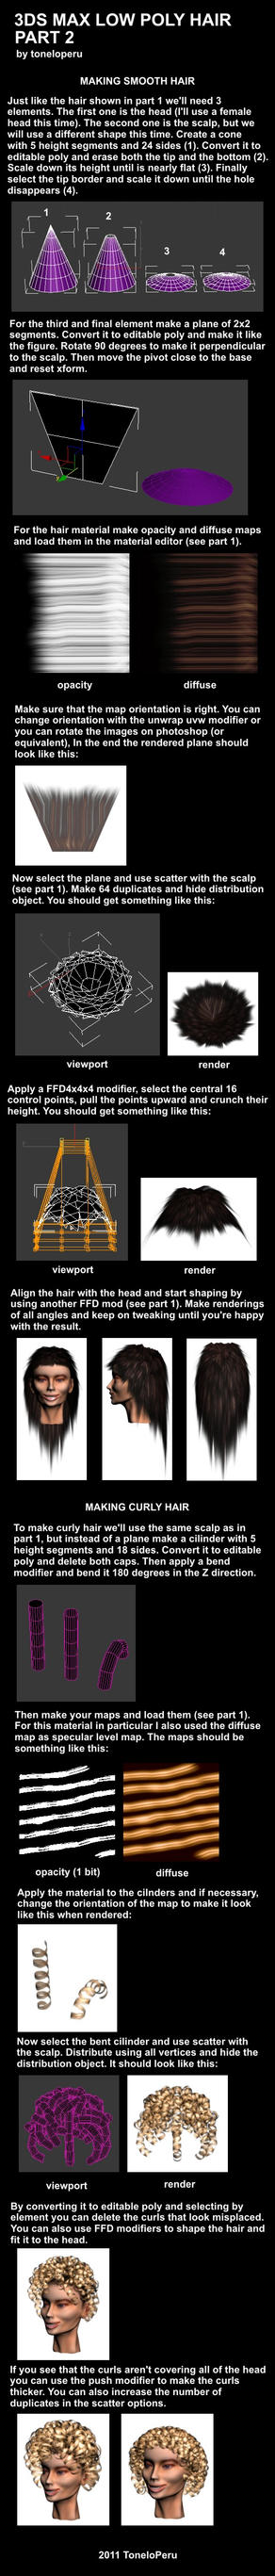 Low poly hair tutorial pt 2 by toneloperu